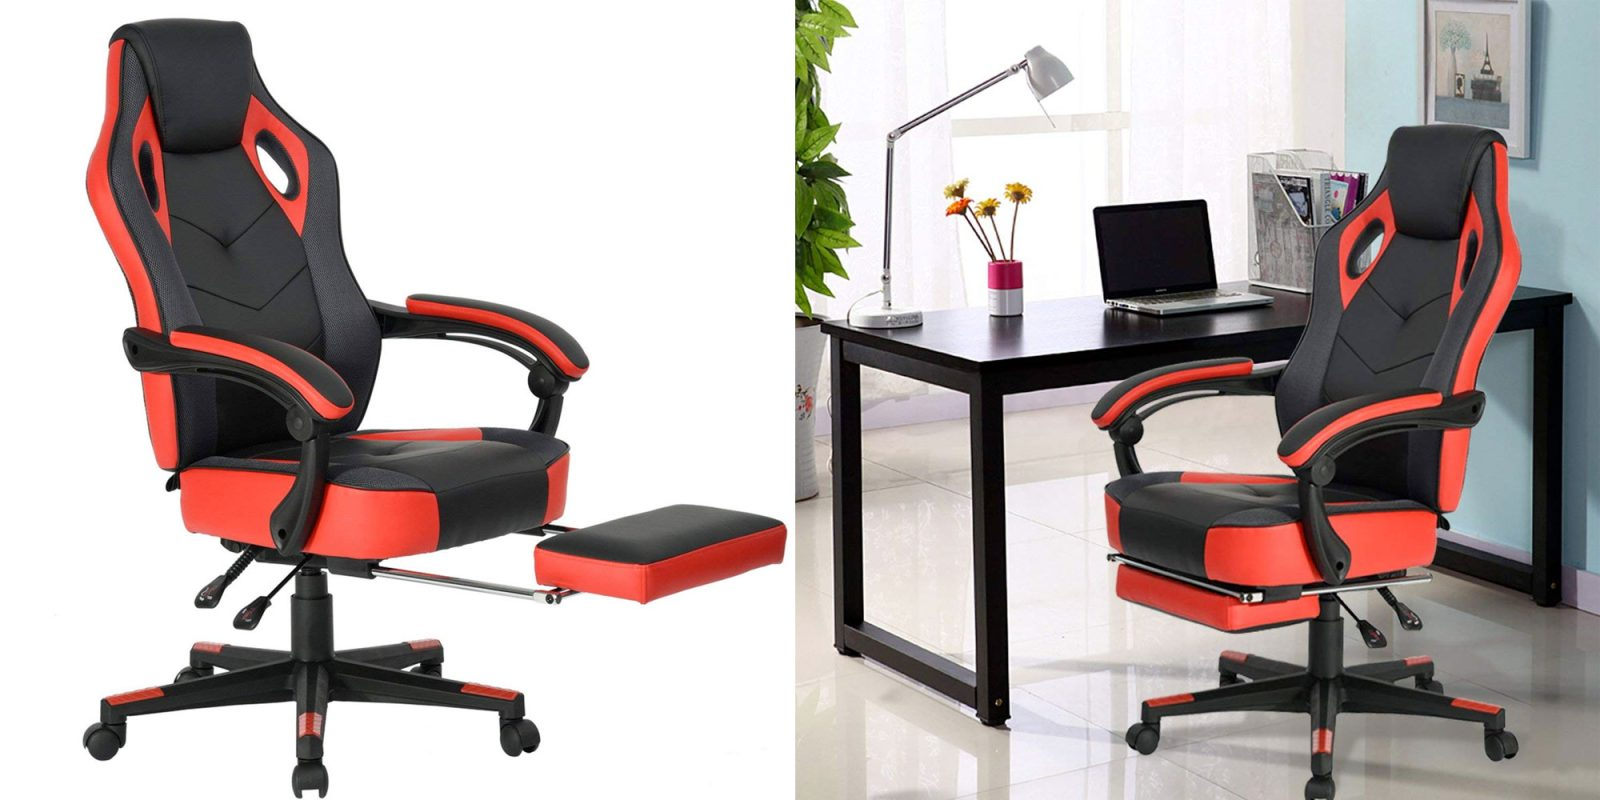 Upgrade Your Battlestation W This Gaming Chair That Has A Built In Footrest 109 Reg 160